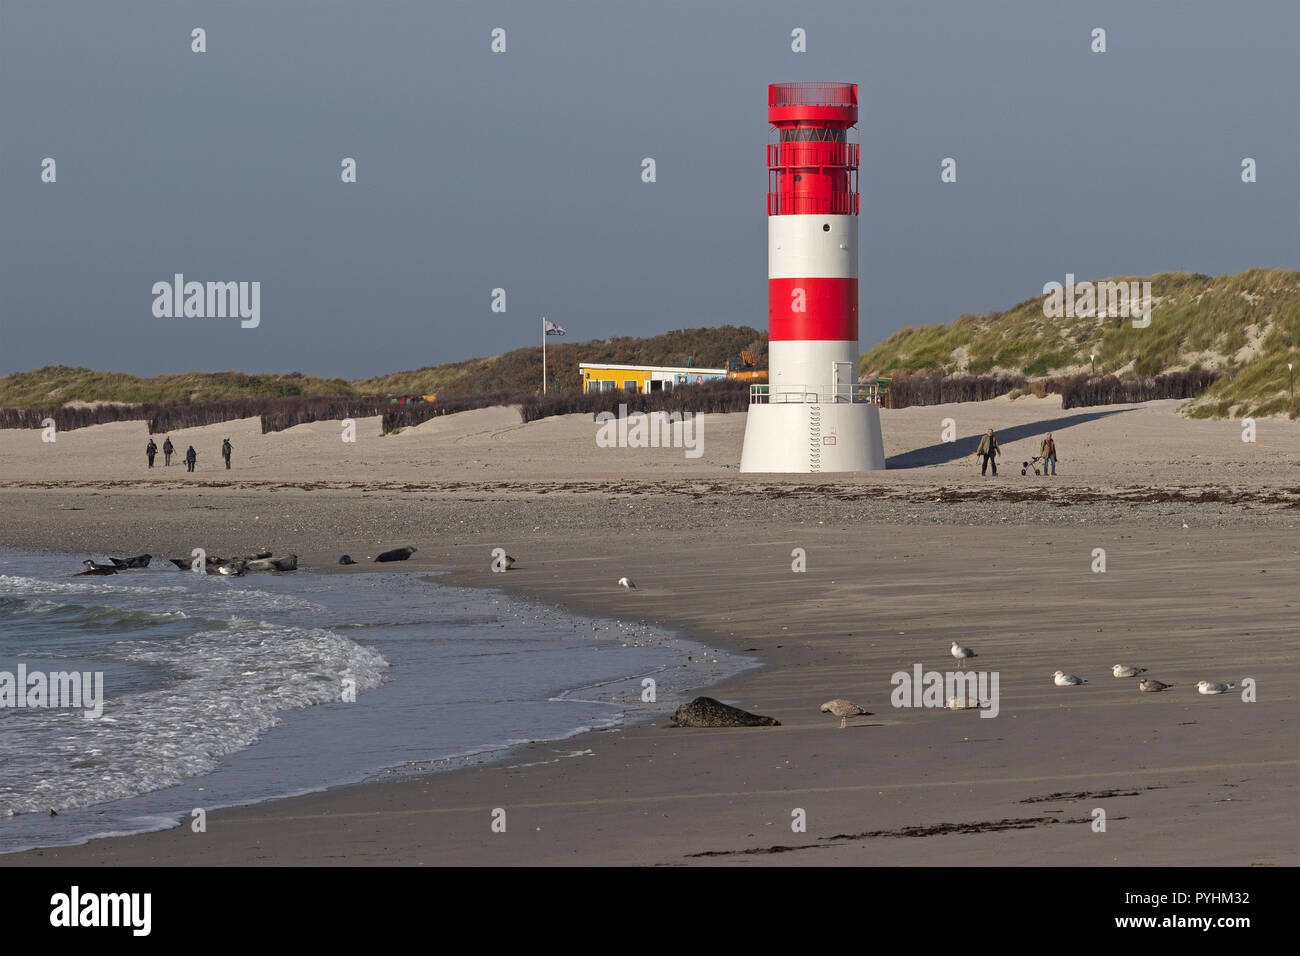 seals in front of the lighthouse, Duene (dune), Heligoland, Schleswig-Holstein, Germany - Stock Image